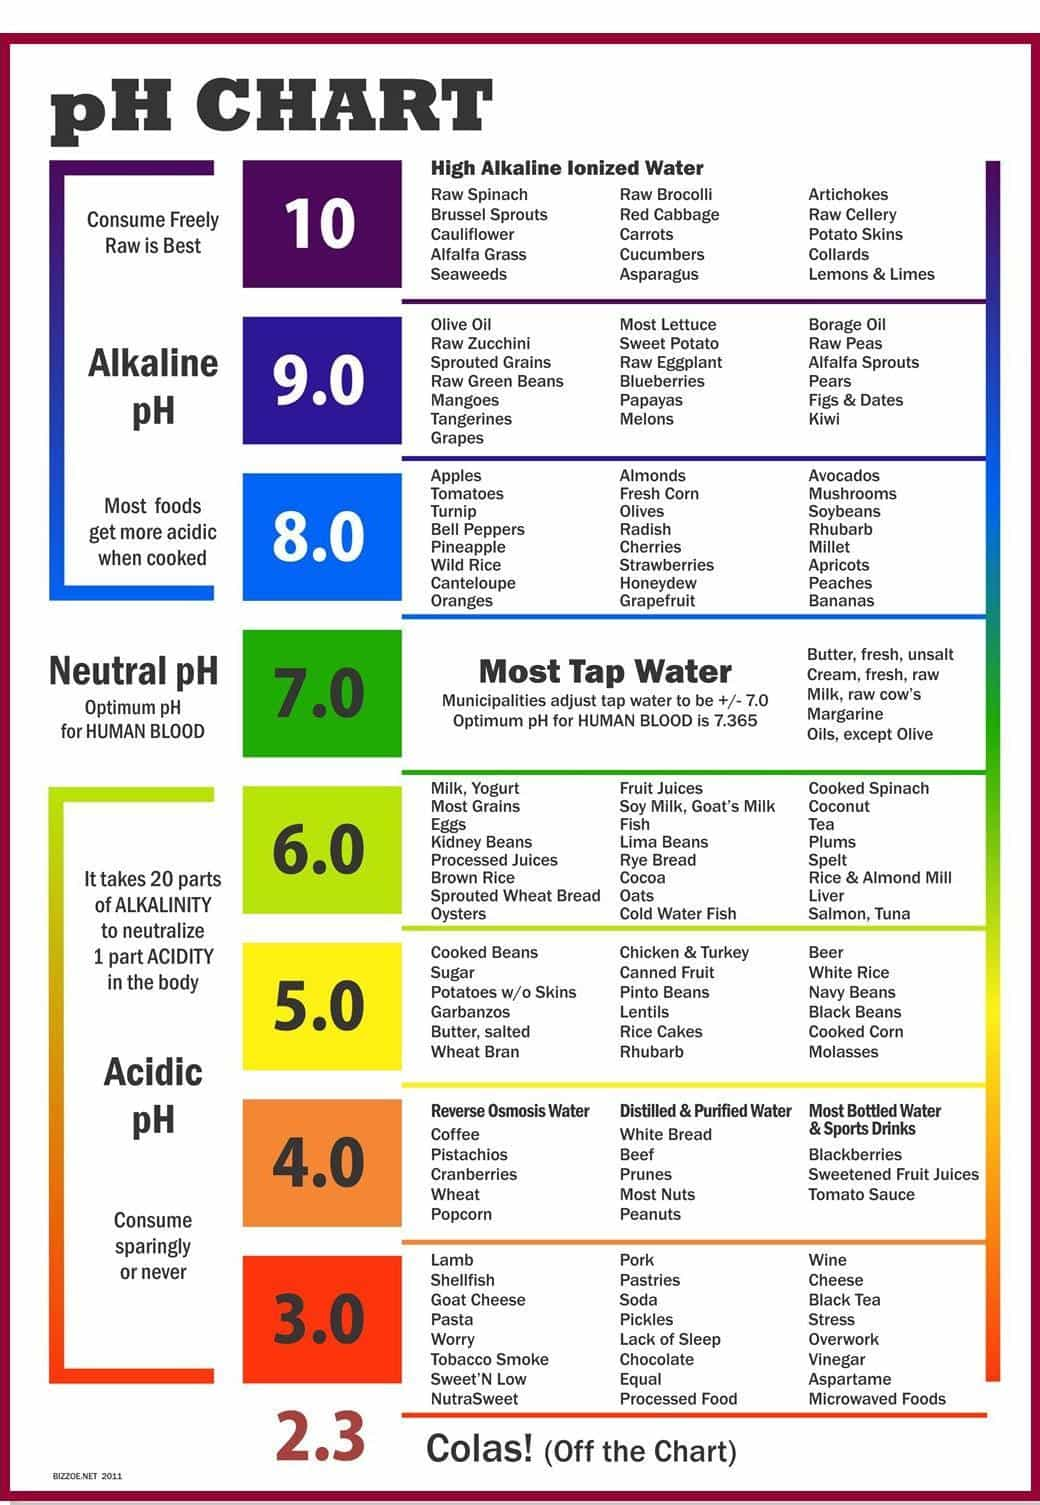 An alkaline diet for balanced human body pH level to improve health